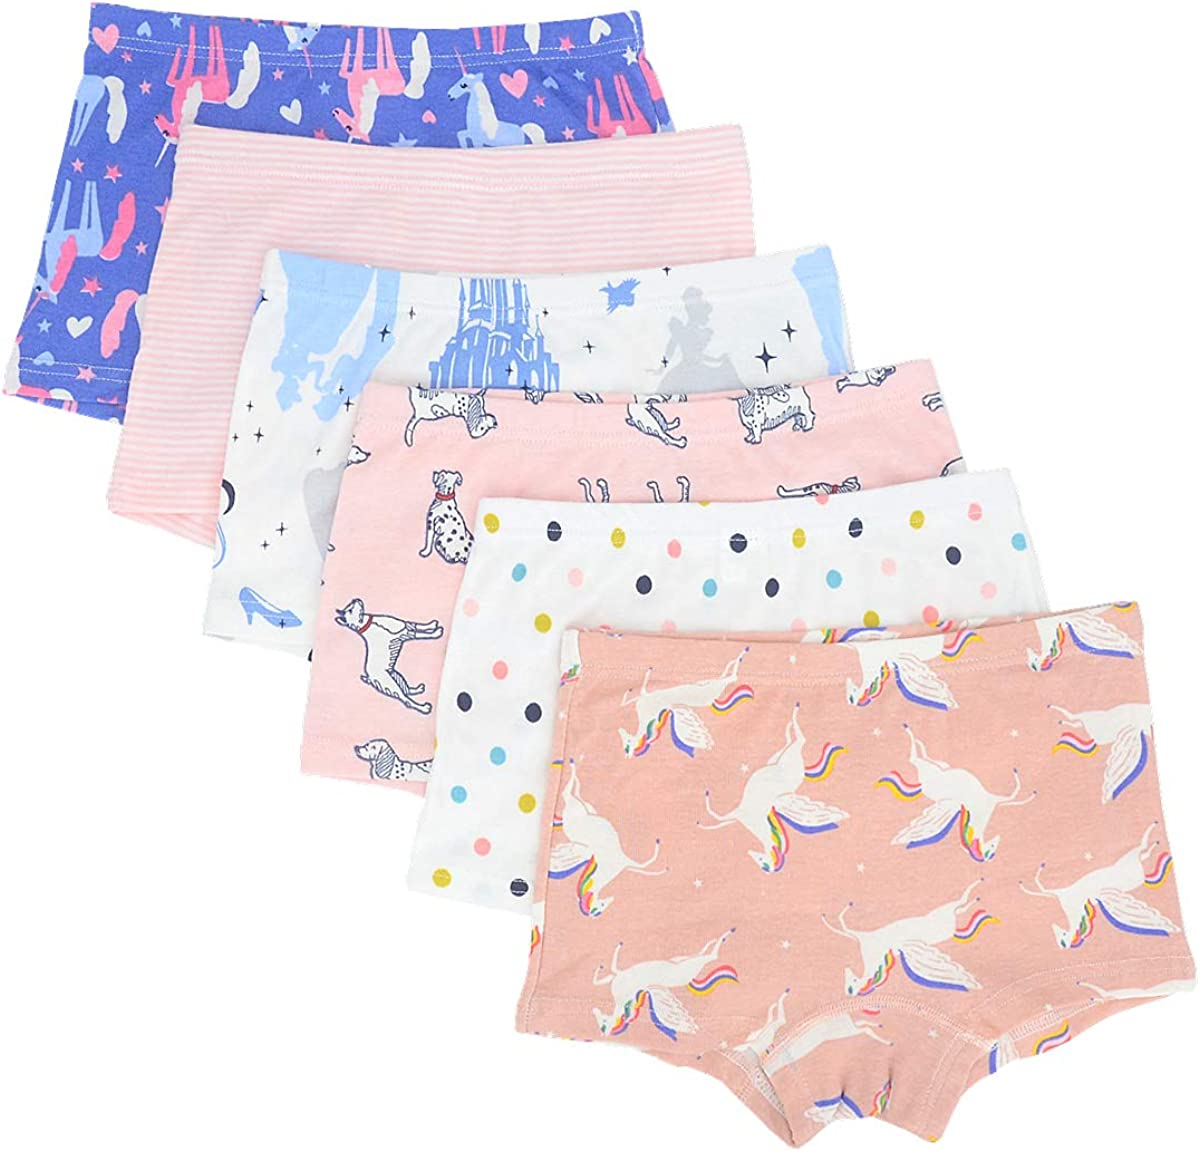 Cczmfeas Kids Girls Soft Cotton Underwear Assorted Boyshort Pack of 5